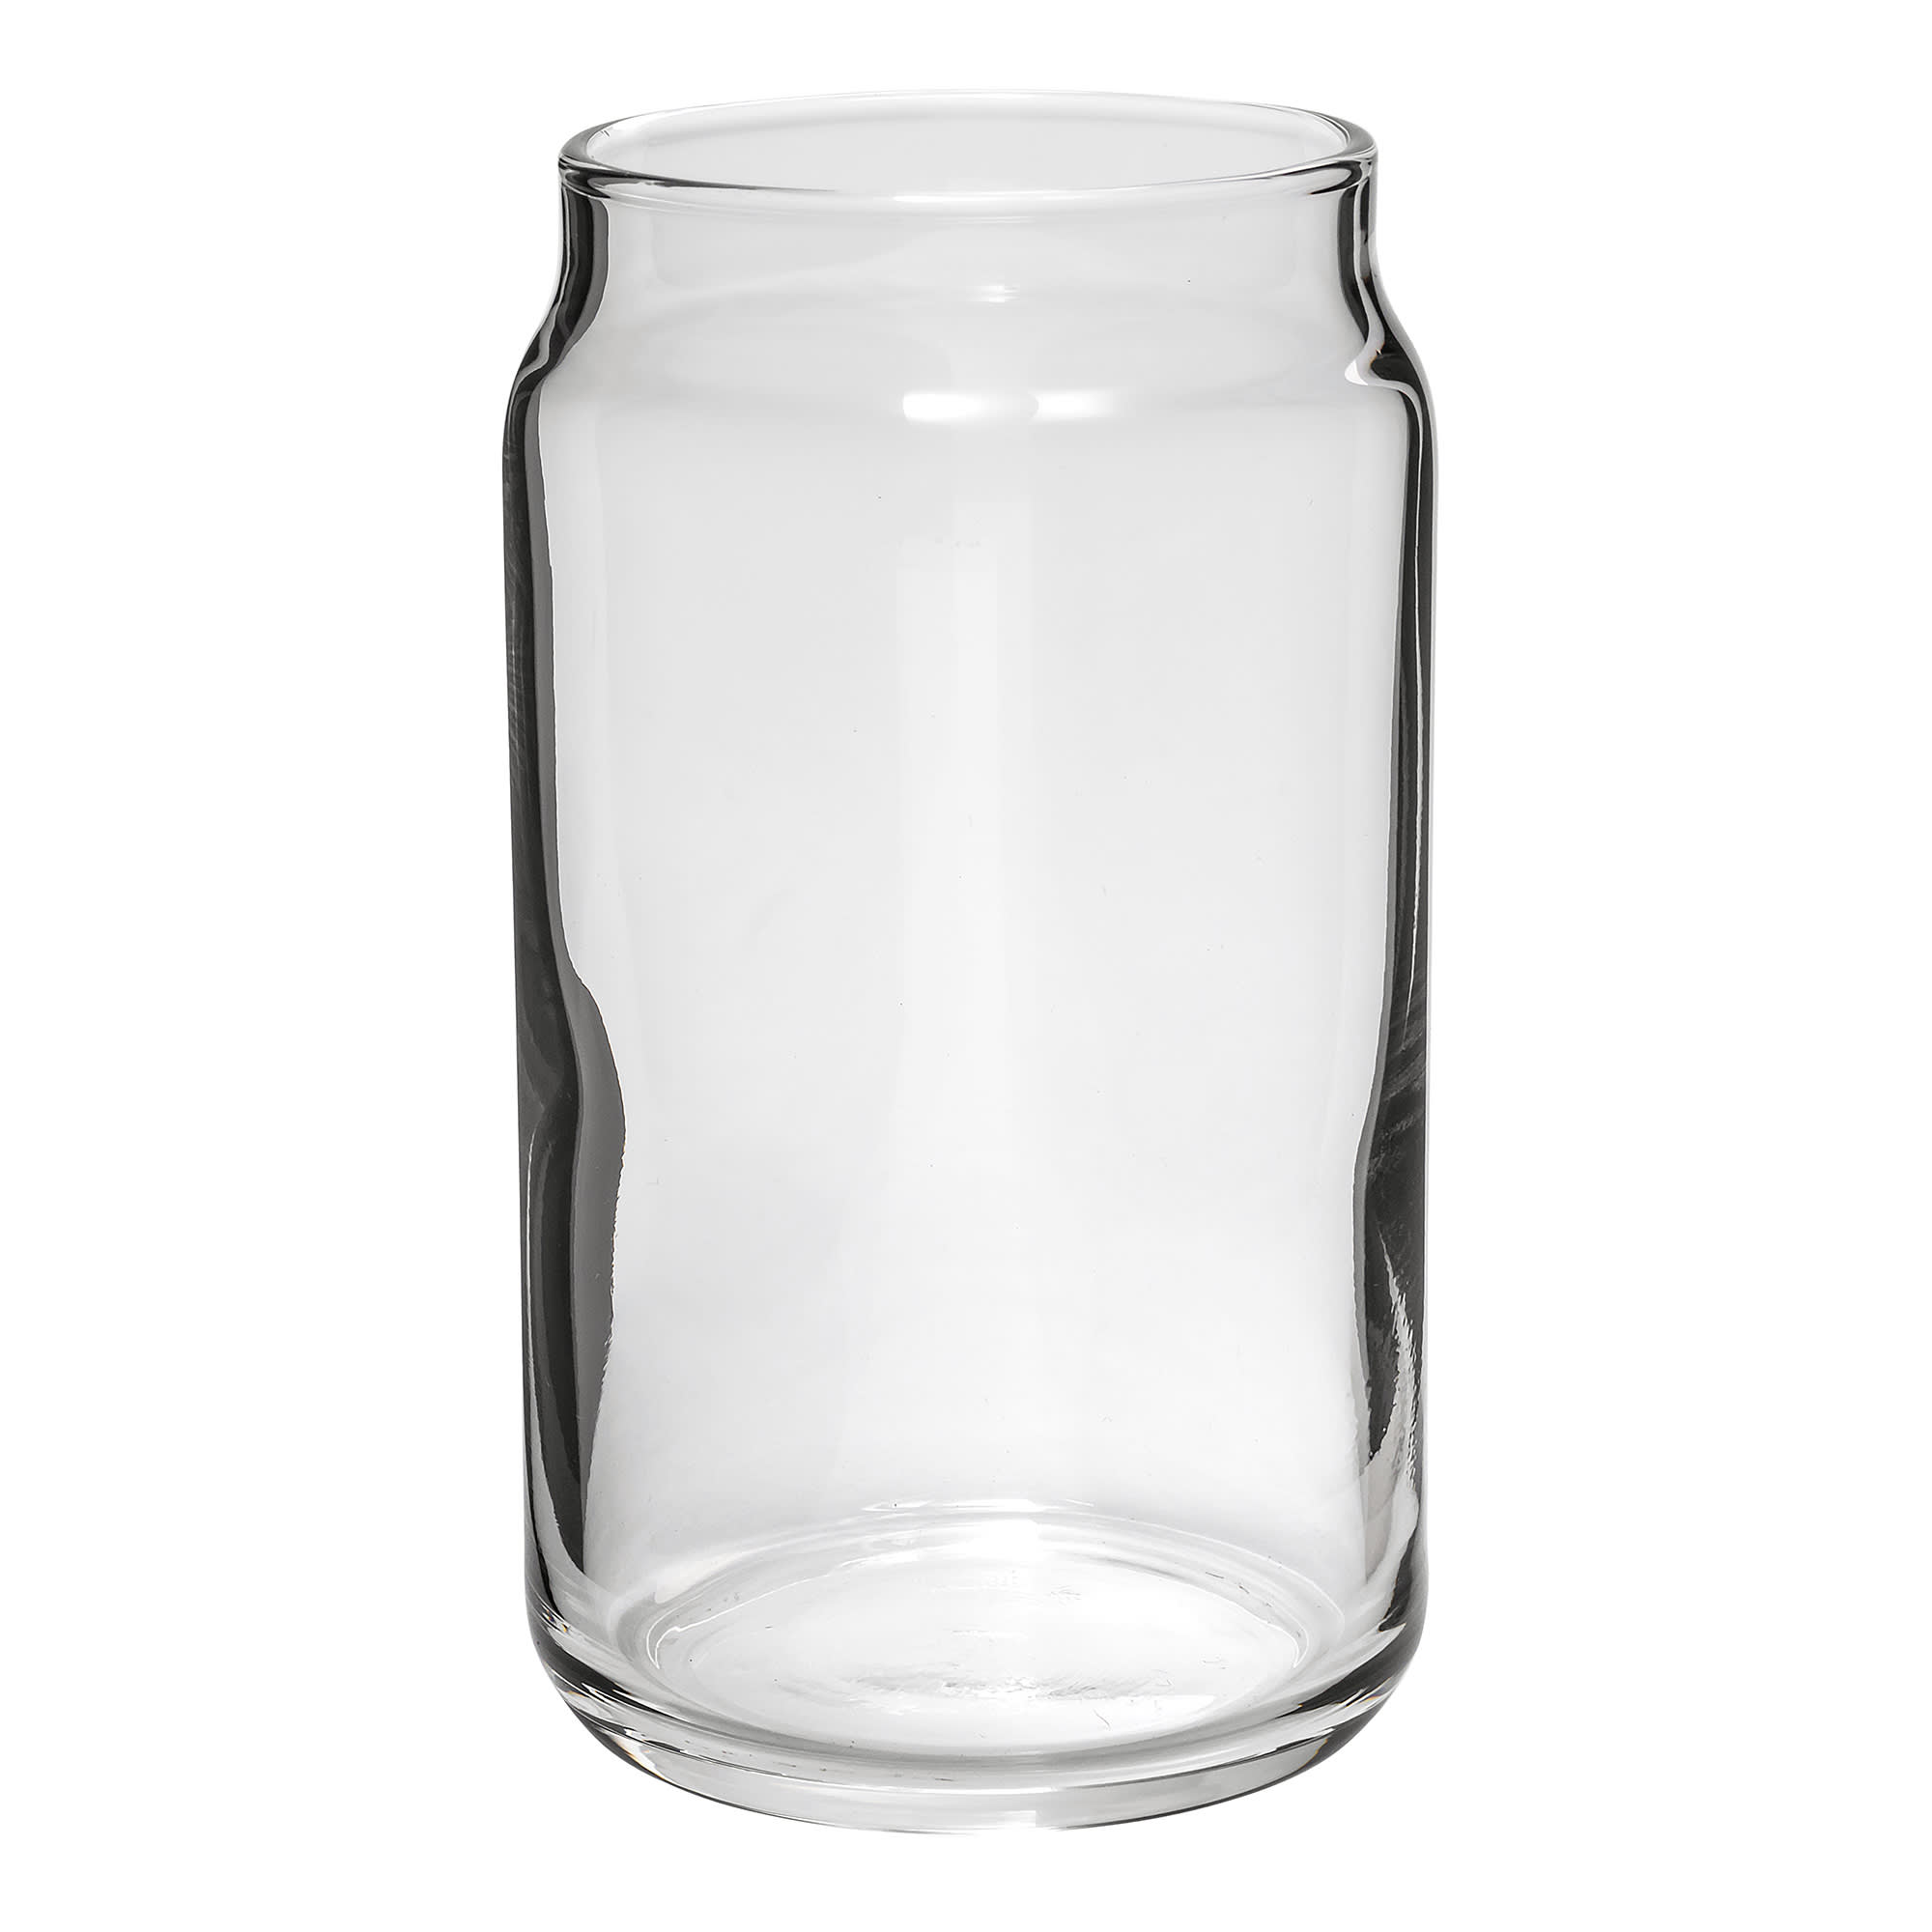 Libbey 265 5-oz Beer Can Taster, Clear